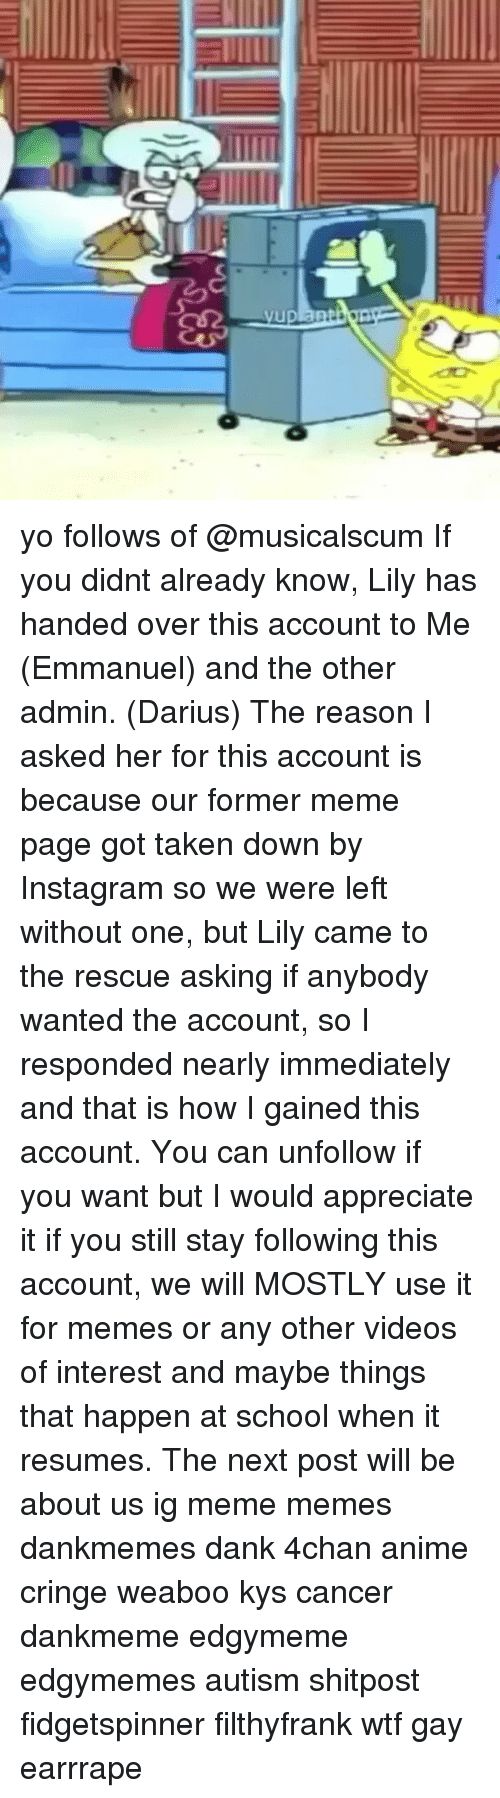 4chan, Anime, and Dank: yo follows of @musicalscum If you didnt already know, Lily has handed over this account to Me (Emmanuel) and the other admin. (Darius) The reason I asked her for this account is because our former meme page got taken down by Instagram so we were left without one, but Lily came to the rescue asking if anybody wanted the account, so I responded nearly immediately and that is how I gained this account. You can unfollow if you want but I would appreciate it if you still stay following this account, we will MOSTLY use it for memes or any other videos of interest and maybe things that happen at school when it resumes. The next post will be about us ig meme memes dankmemes dank 4chan anime cringe weaboo kys cancer dankmeme edgymeme edgymemes autism shitpost fidgetspinner filthyfrank wtf gay earrrape